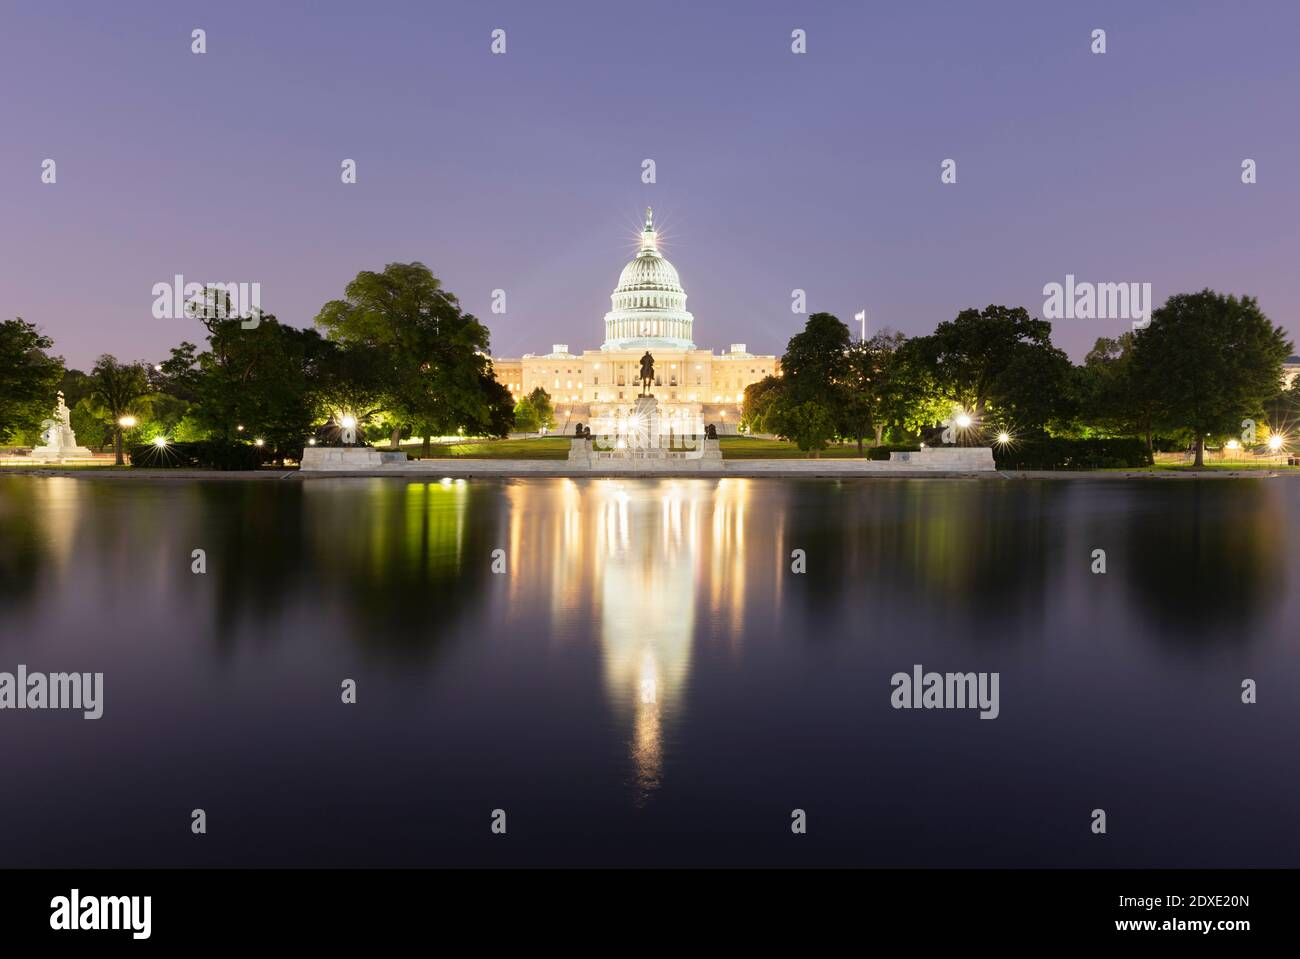 USA, Washington DC, United States Capitol at eastern end of National Mall at night Stock Photo